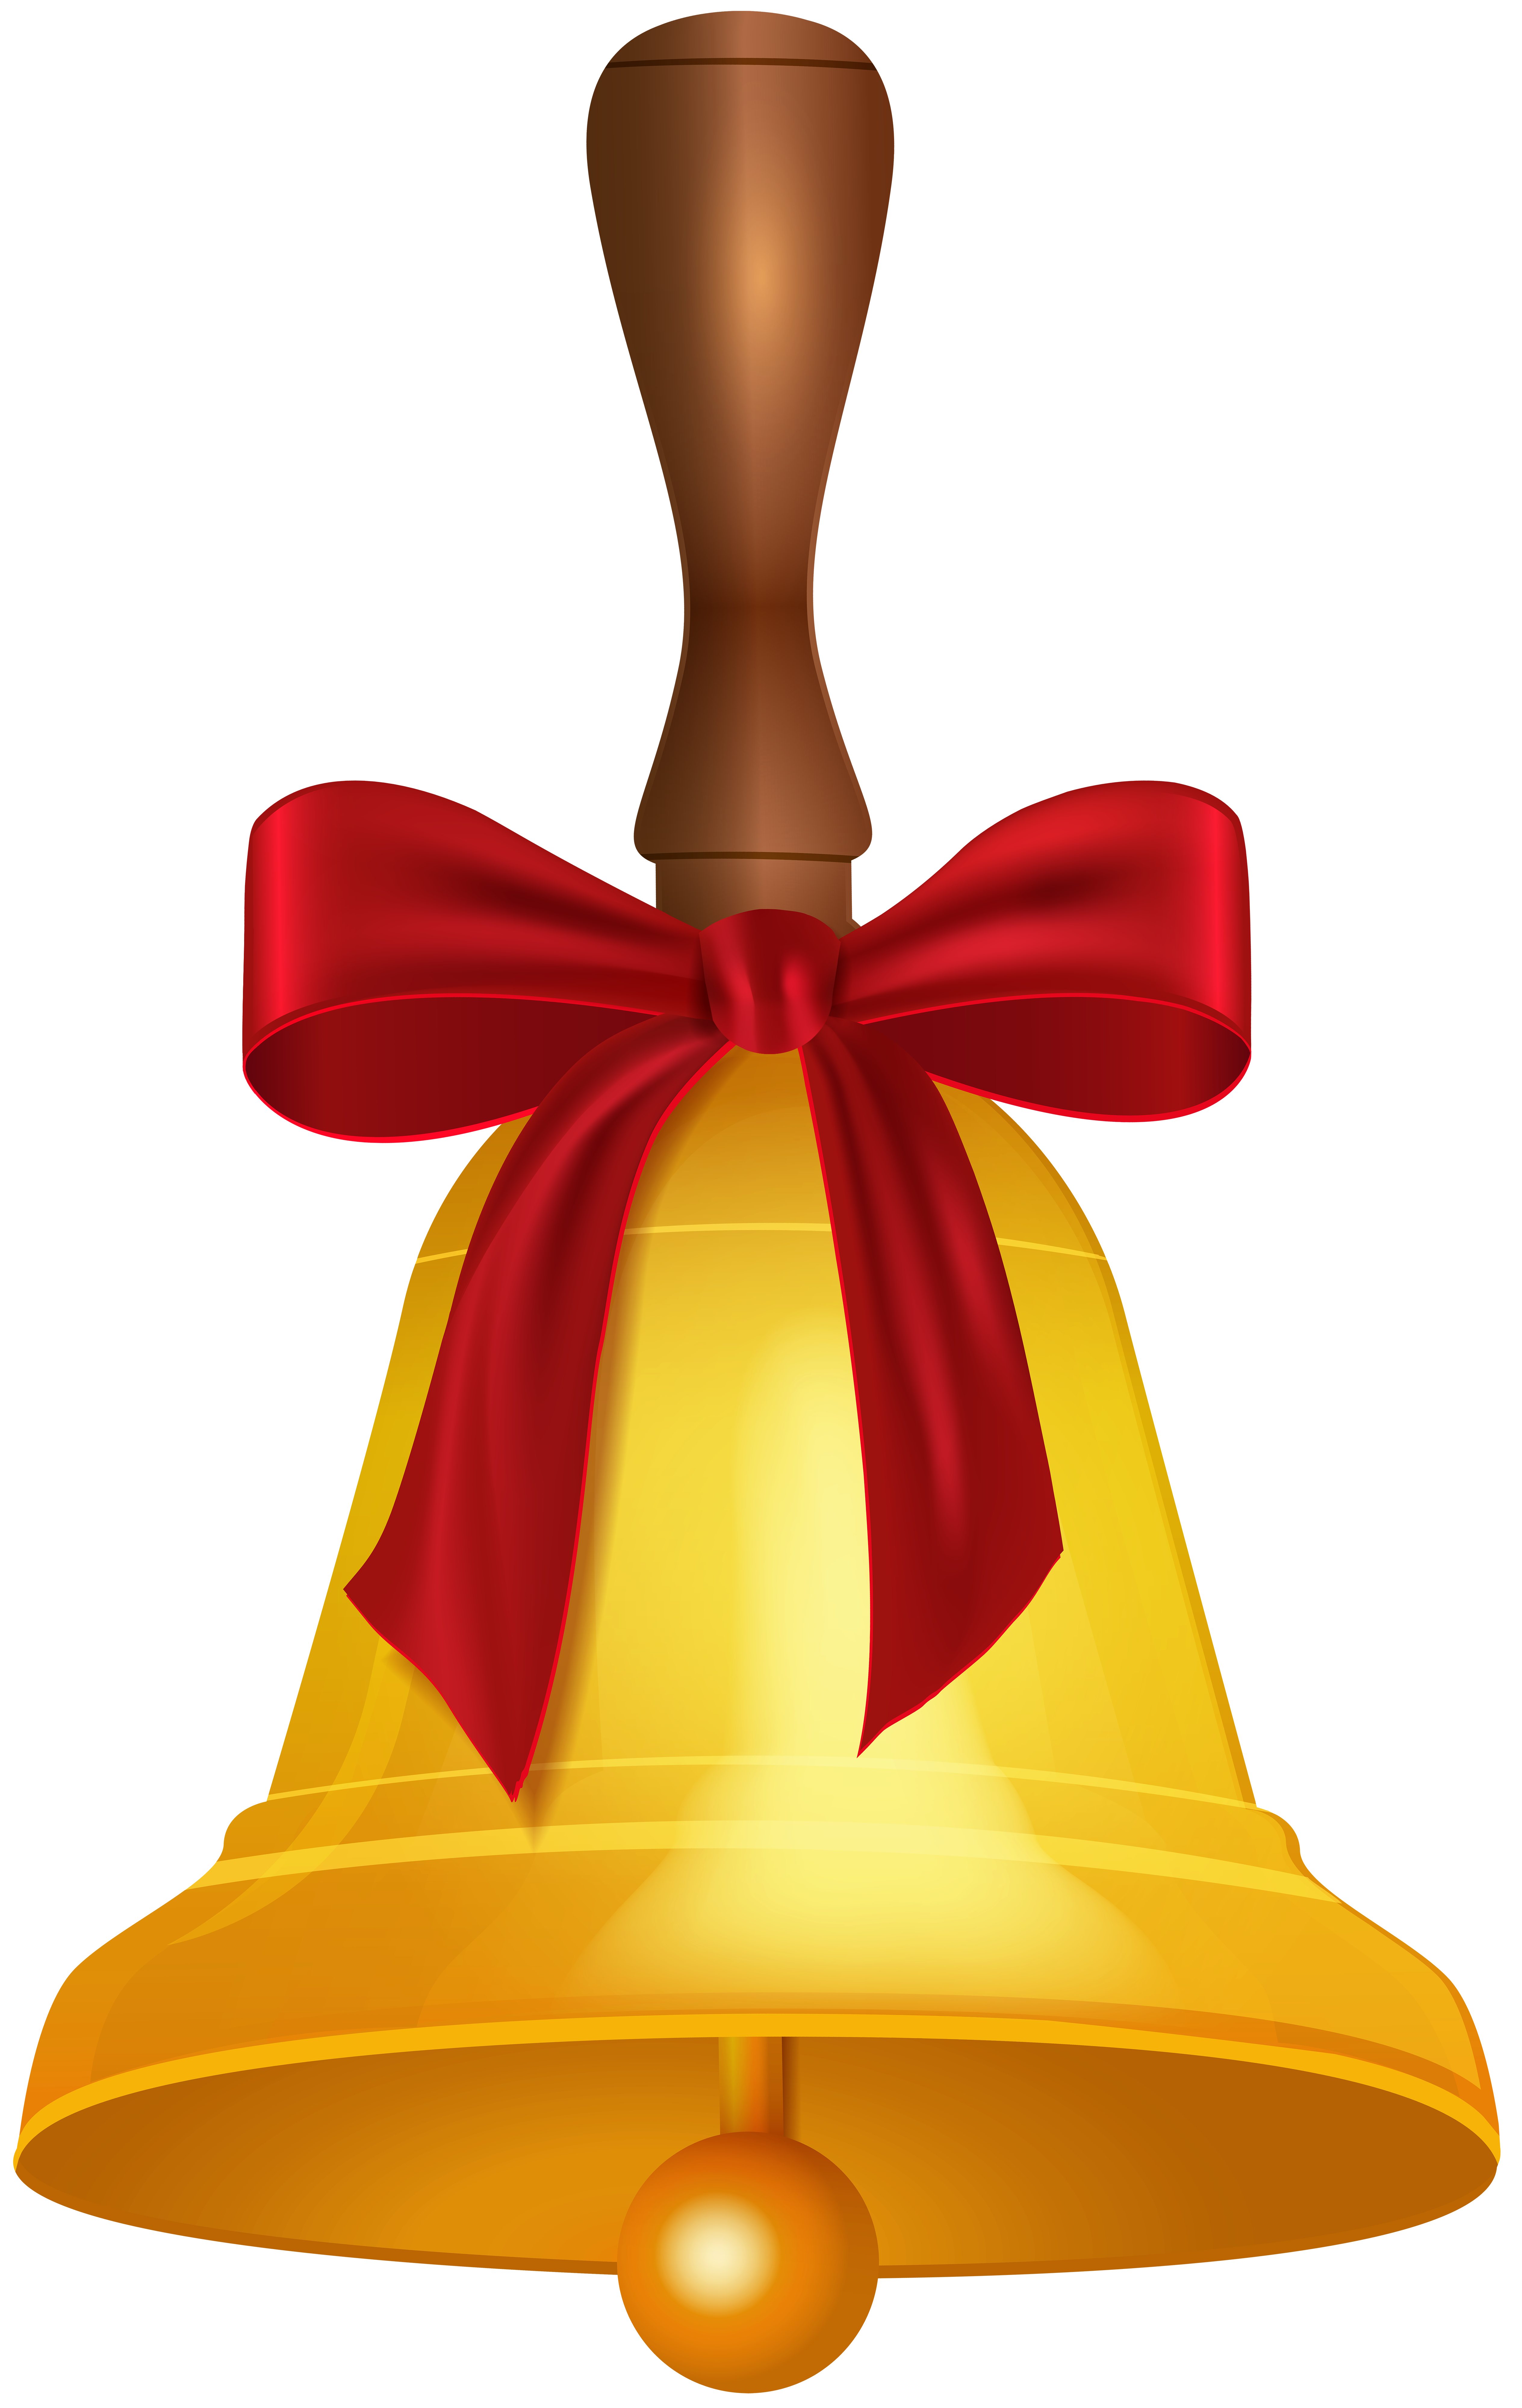 Gold School Bell PNG Clip Art Image.